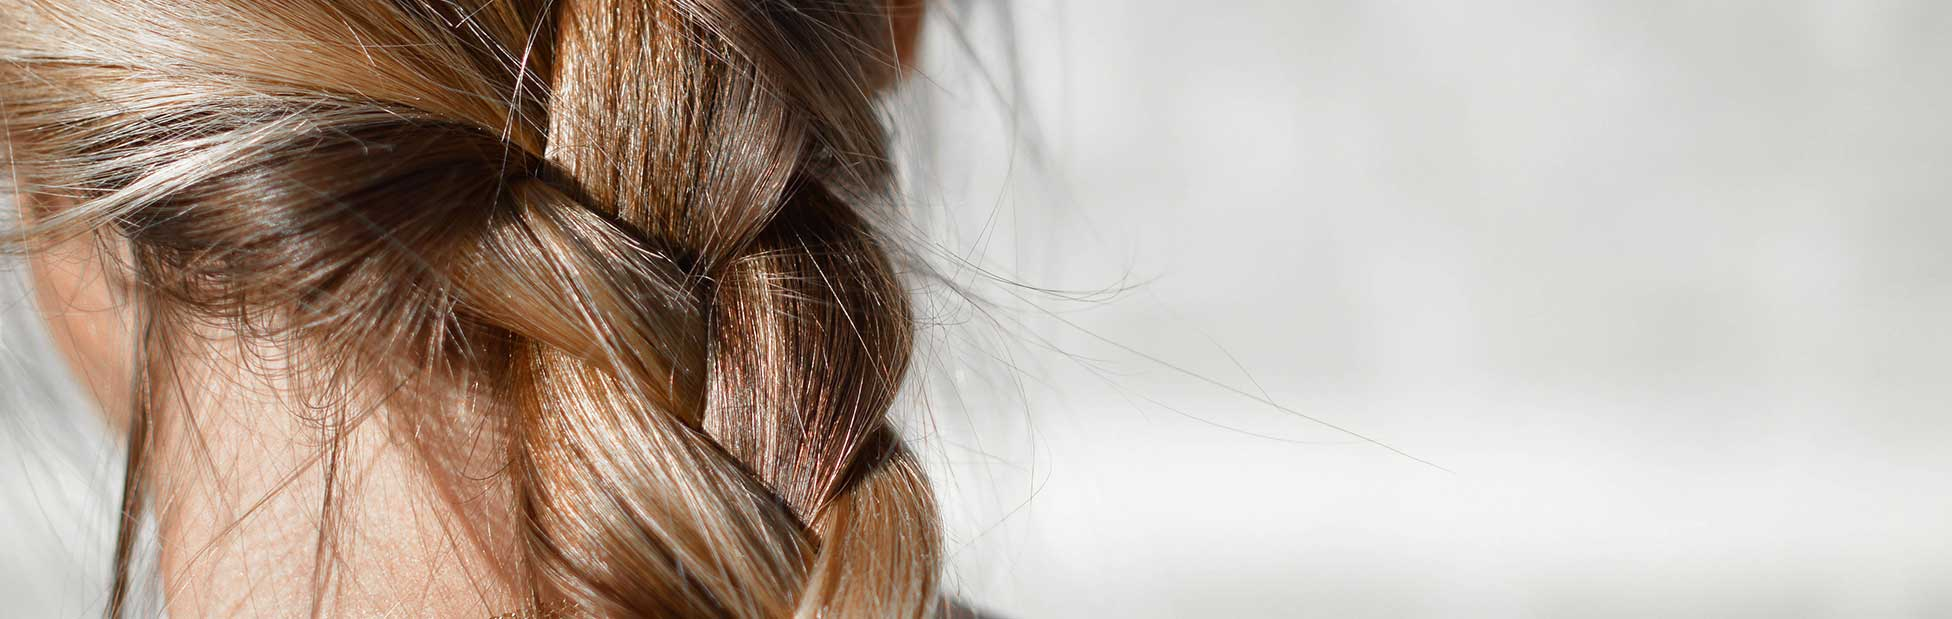 A picture of a braid up close